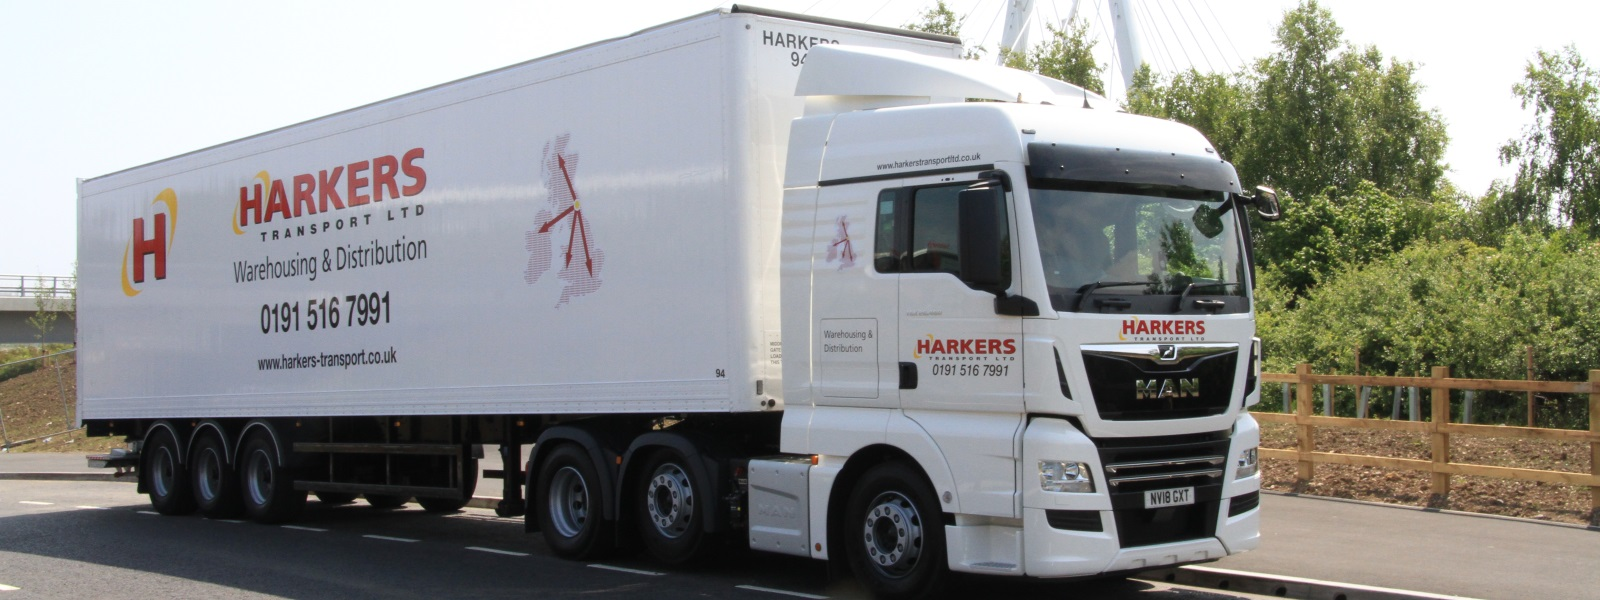 Harkers Transport Ltd